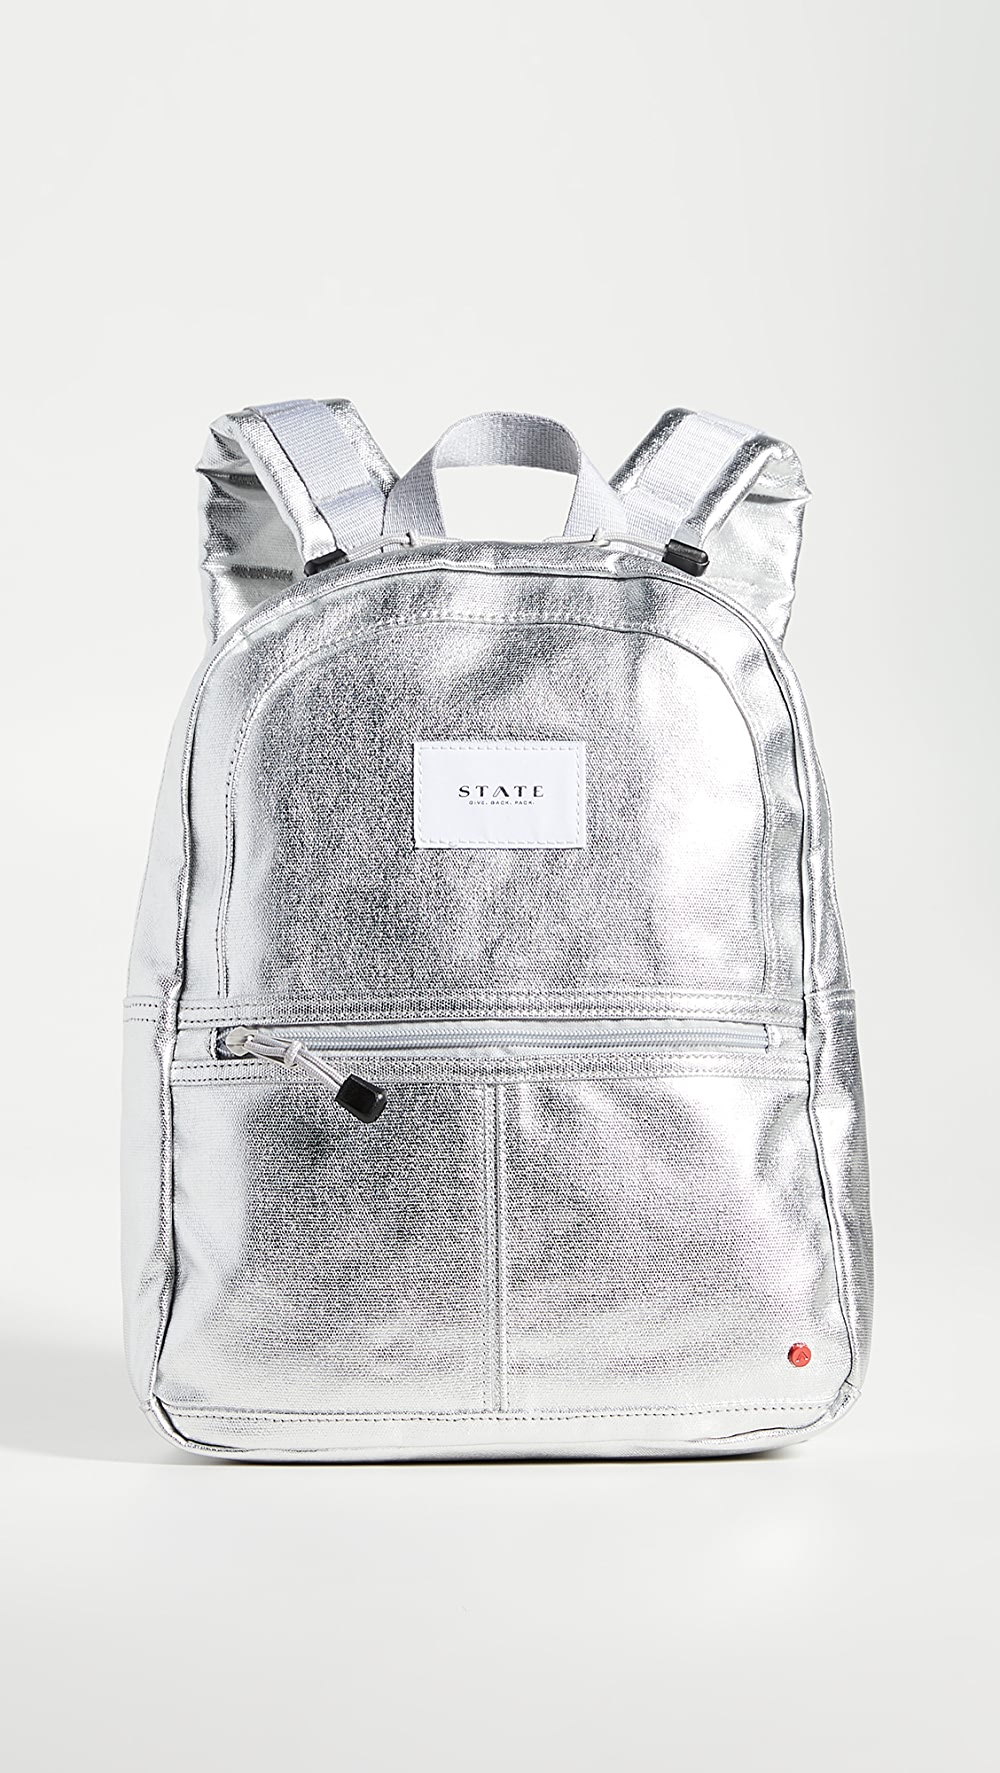 Purposeful State - Mini Kane Backpack Famous For Selected Materials, Novel Designs, Delightful Colors And Exquisite Workmanship